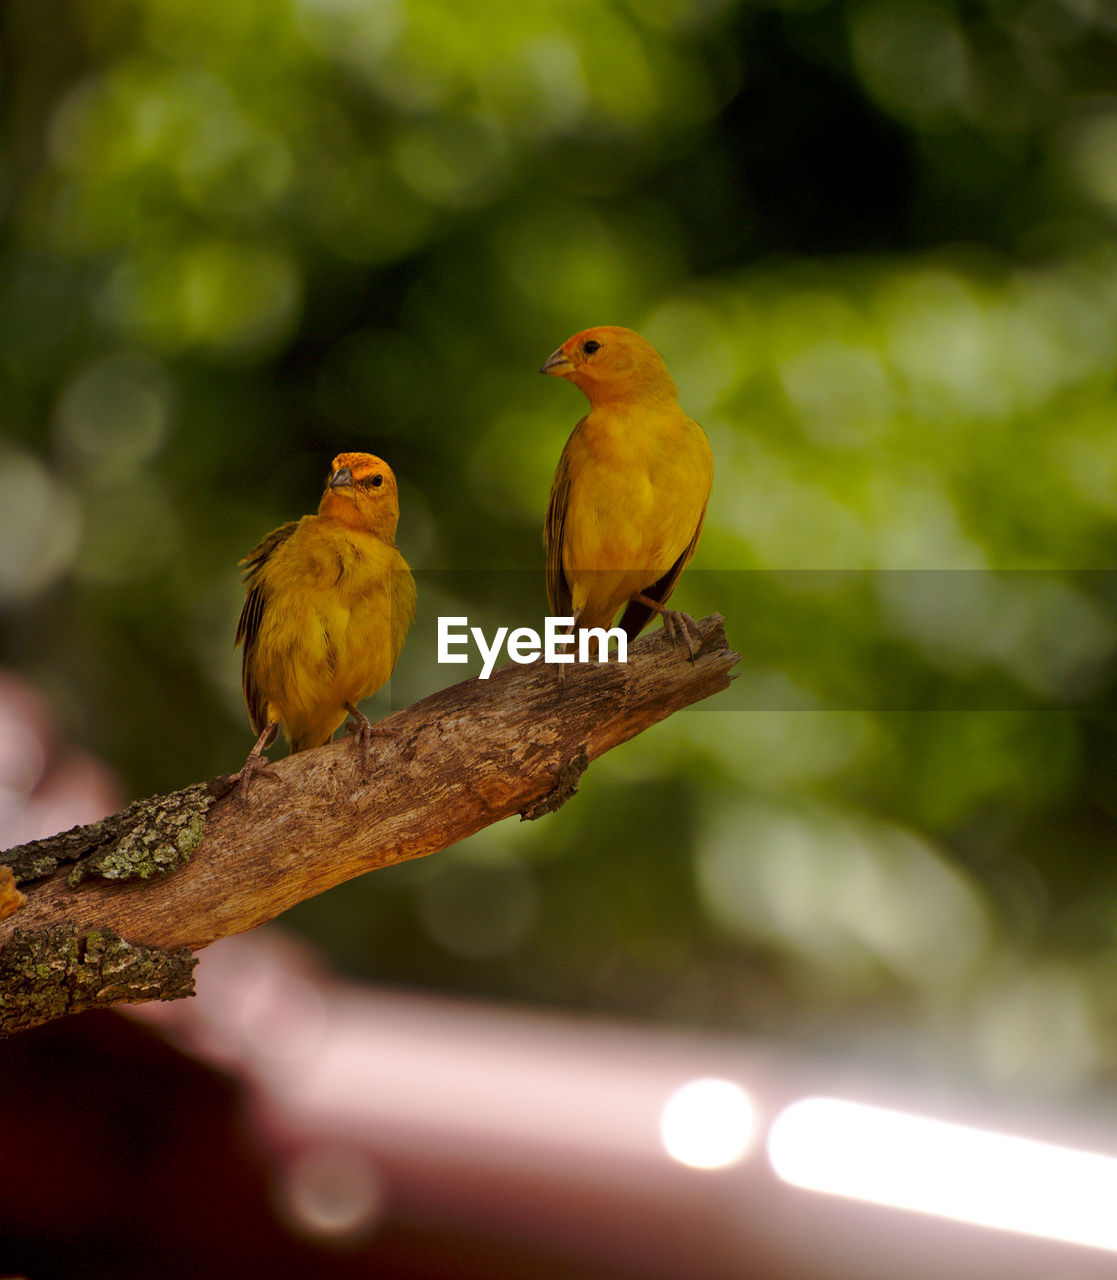 bird, vertebrate, perching, animal themes, group of animals, animal, branch, animal wildlife, two animals, tree, animals in the wild, focus on foreground, day, nature, outdoors, plant, no people, close-up, selective focus, beauty in nature